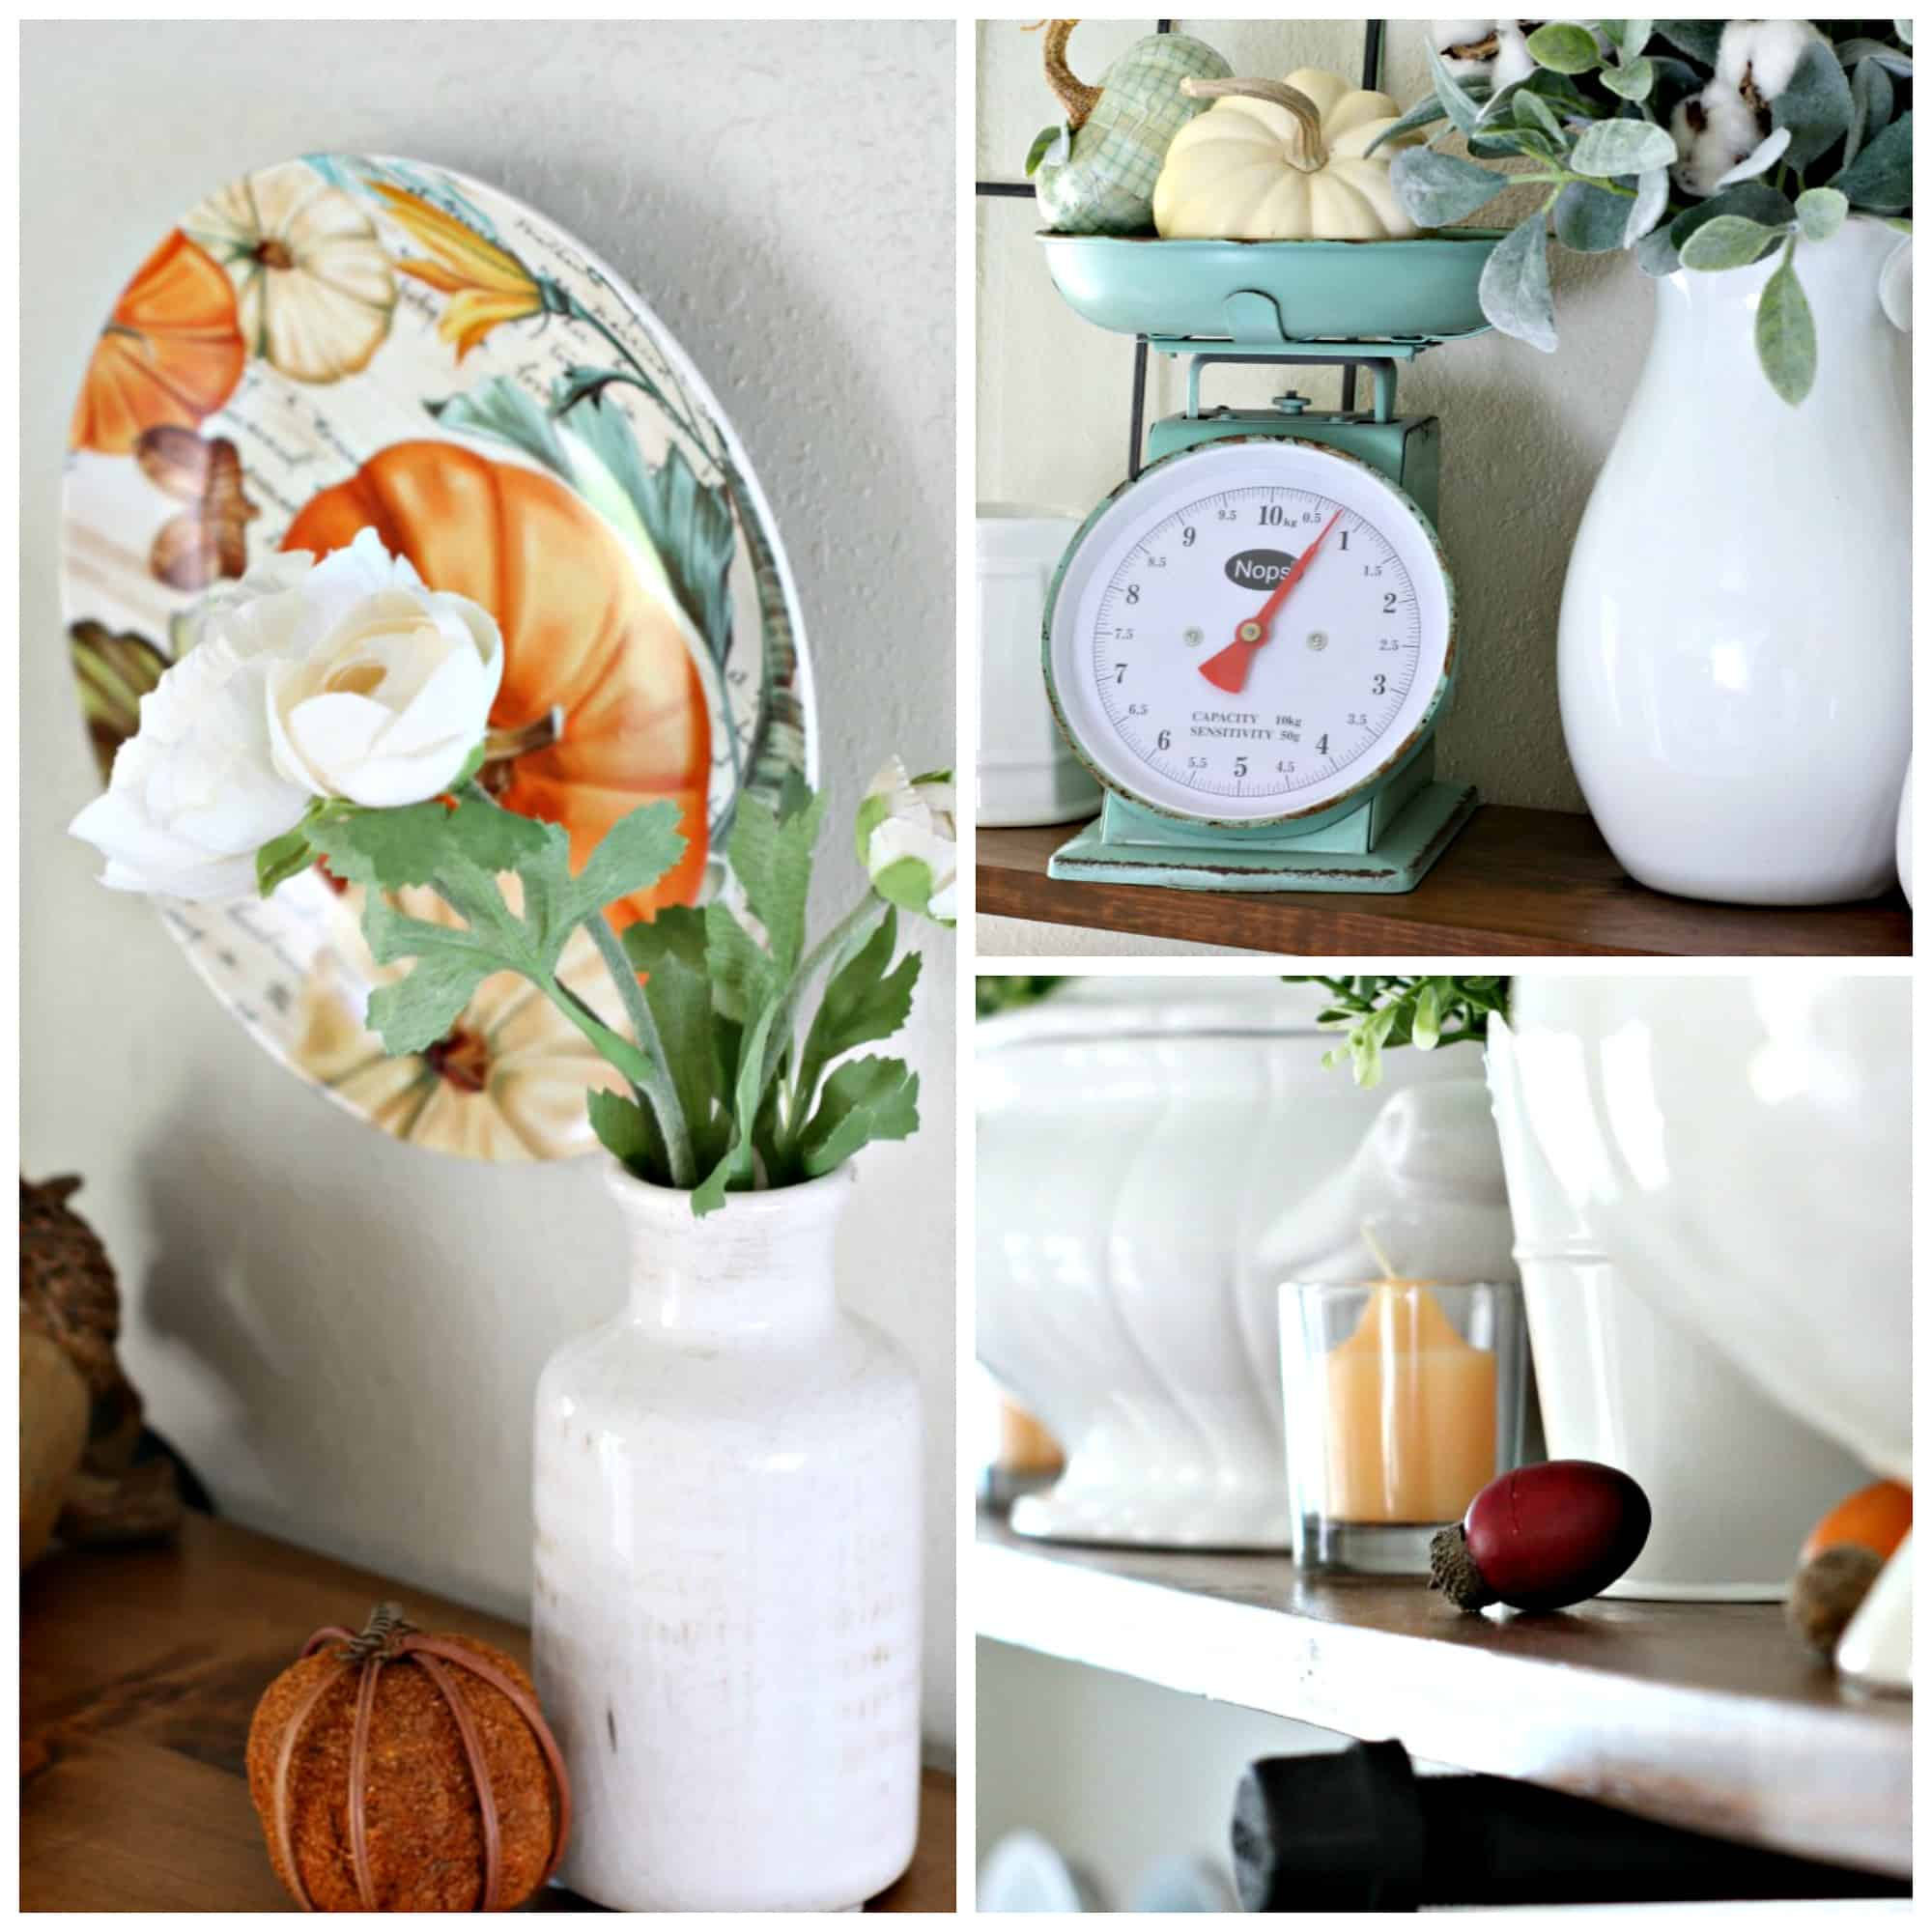 adding fall decor to a small kitchen fall decor elements vintage scale autumn wall plate with flower vase and pumpkins orange candle and acorns on wood surface